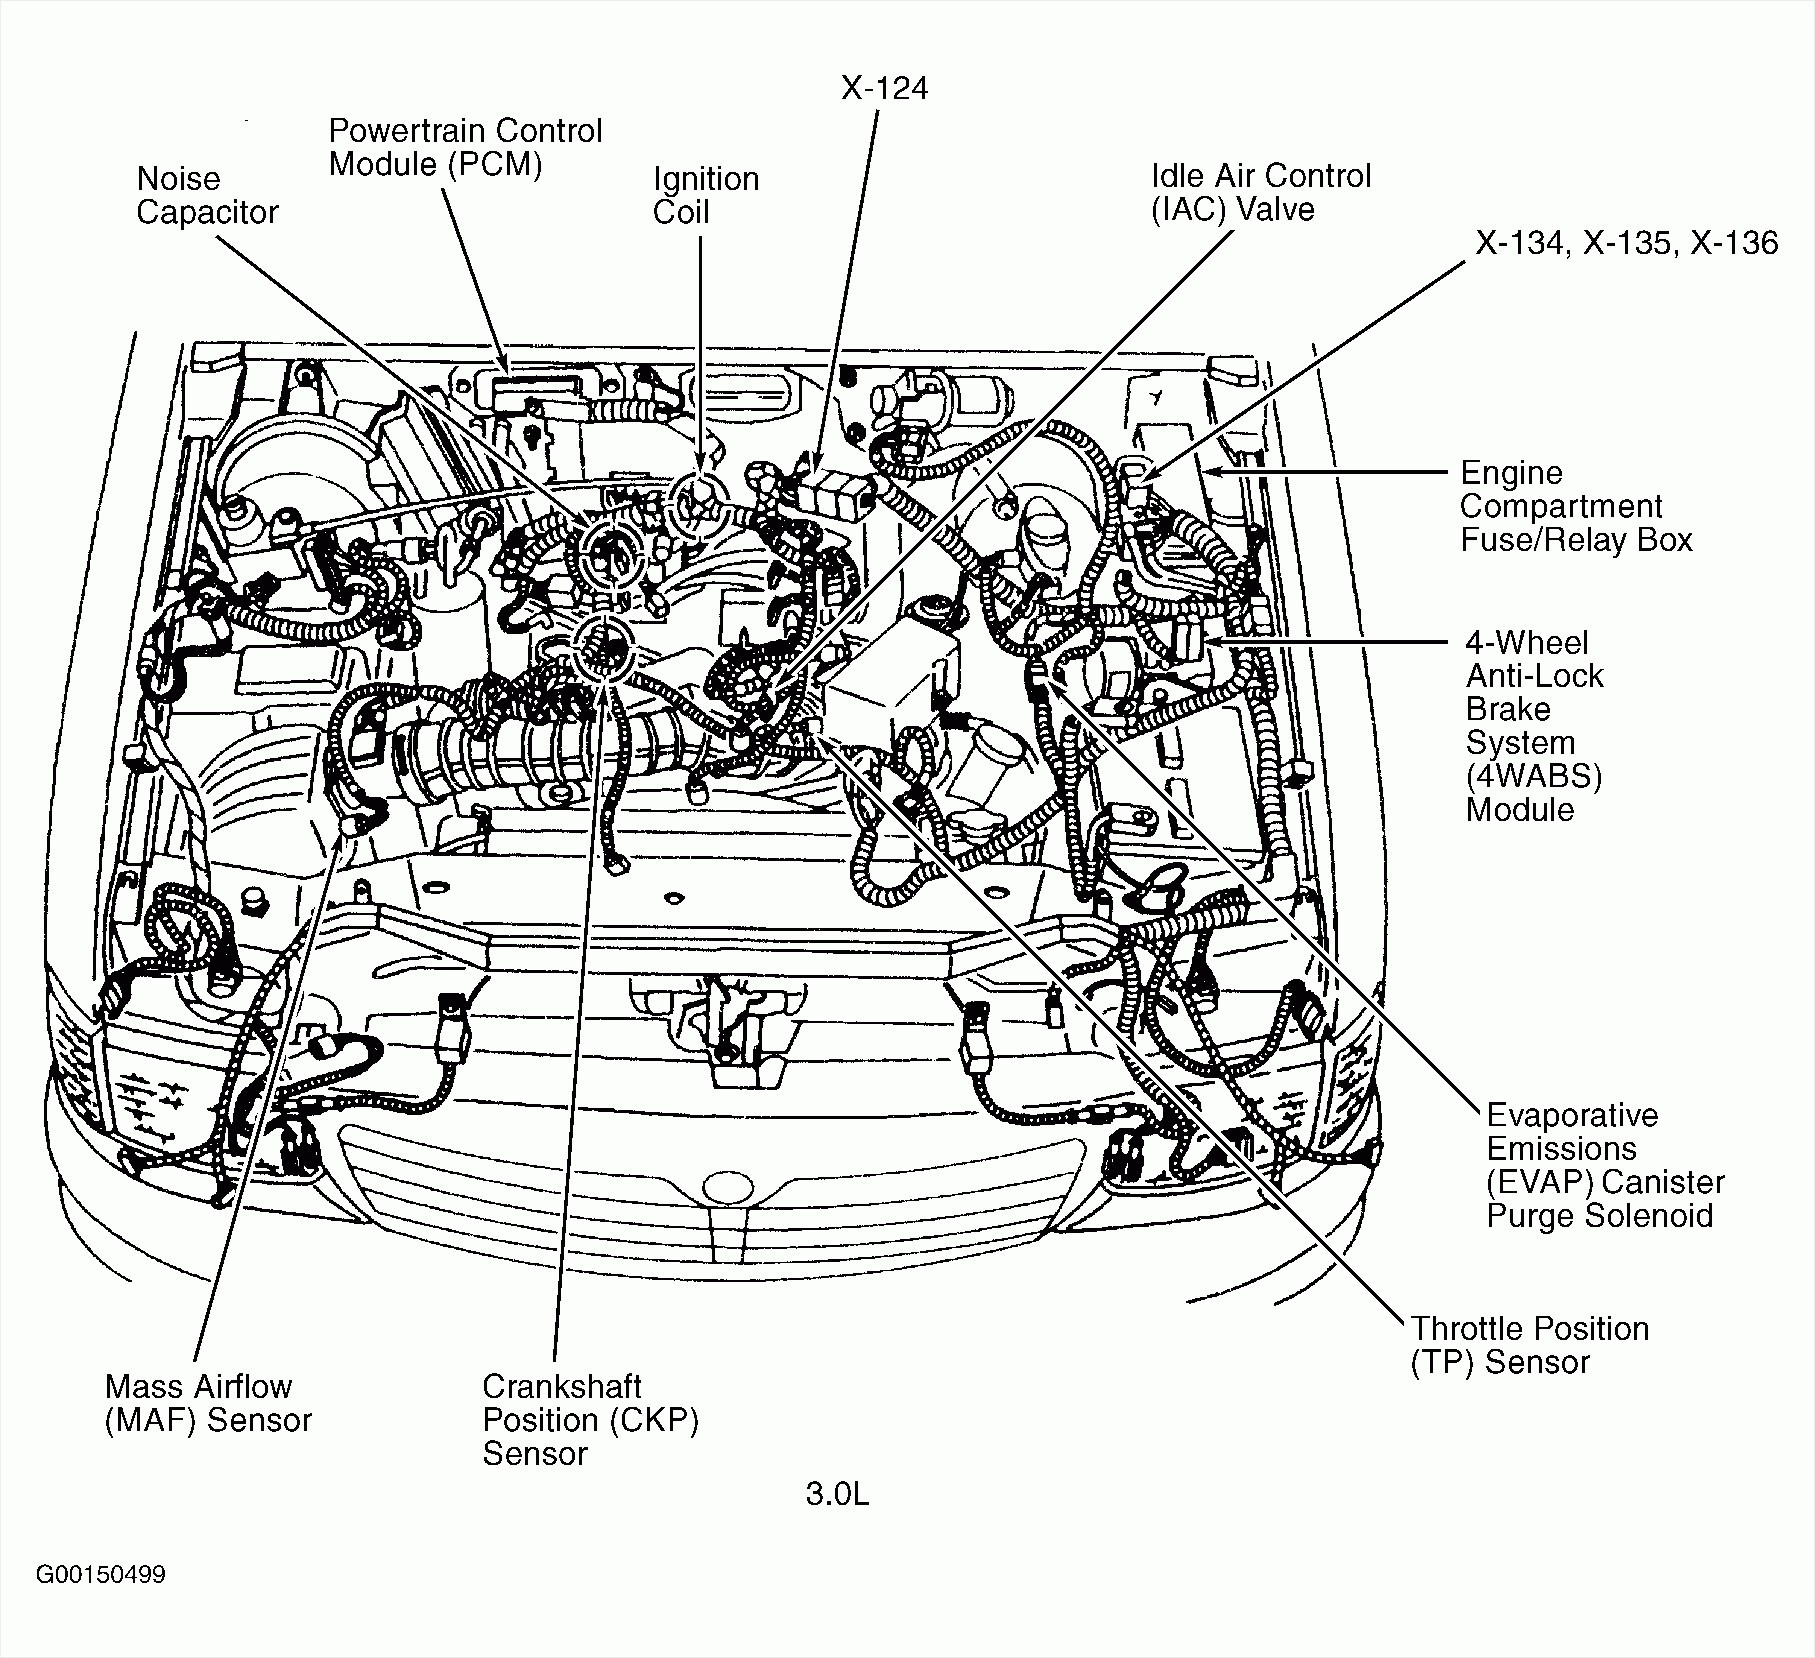 hight resolution of e36 engine diagram schema diagram database e36 318i engine diagram bmw e36 wiring harness diagram wiring